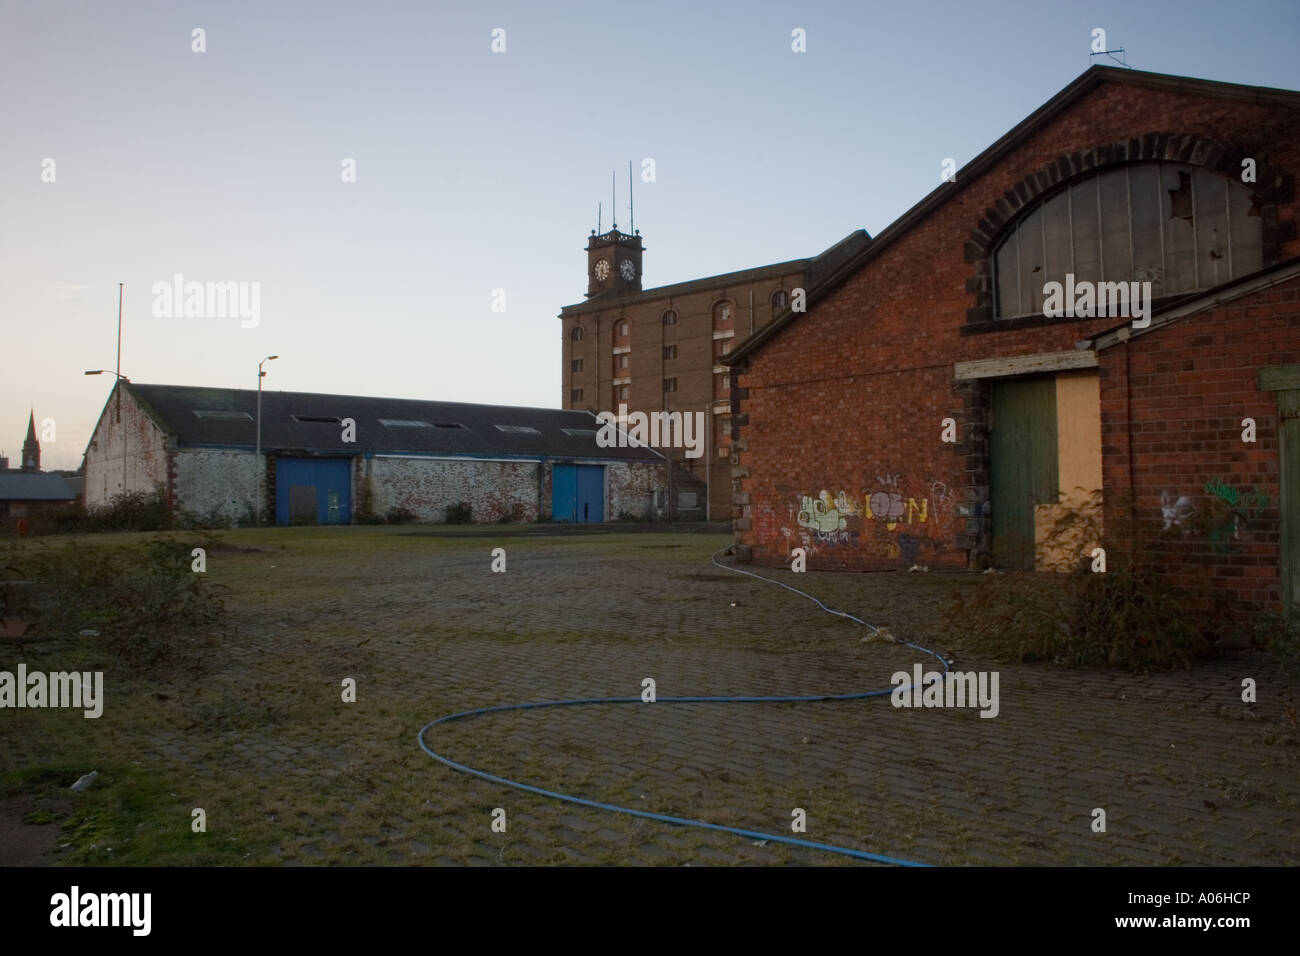 Derelict warehouses along the docklands in Dundee, UK - Stock Image